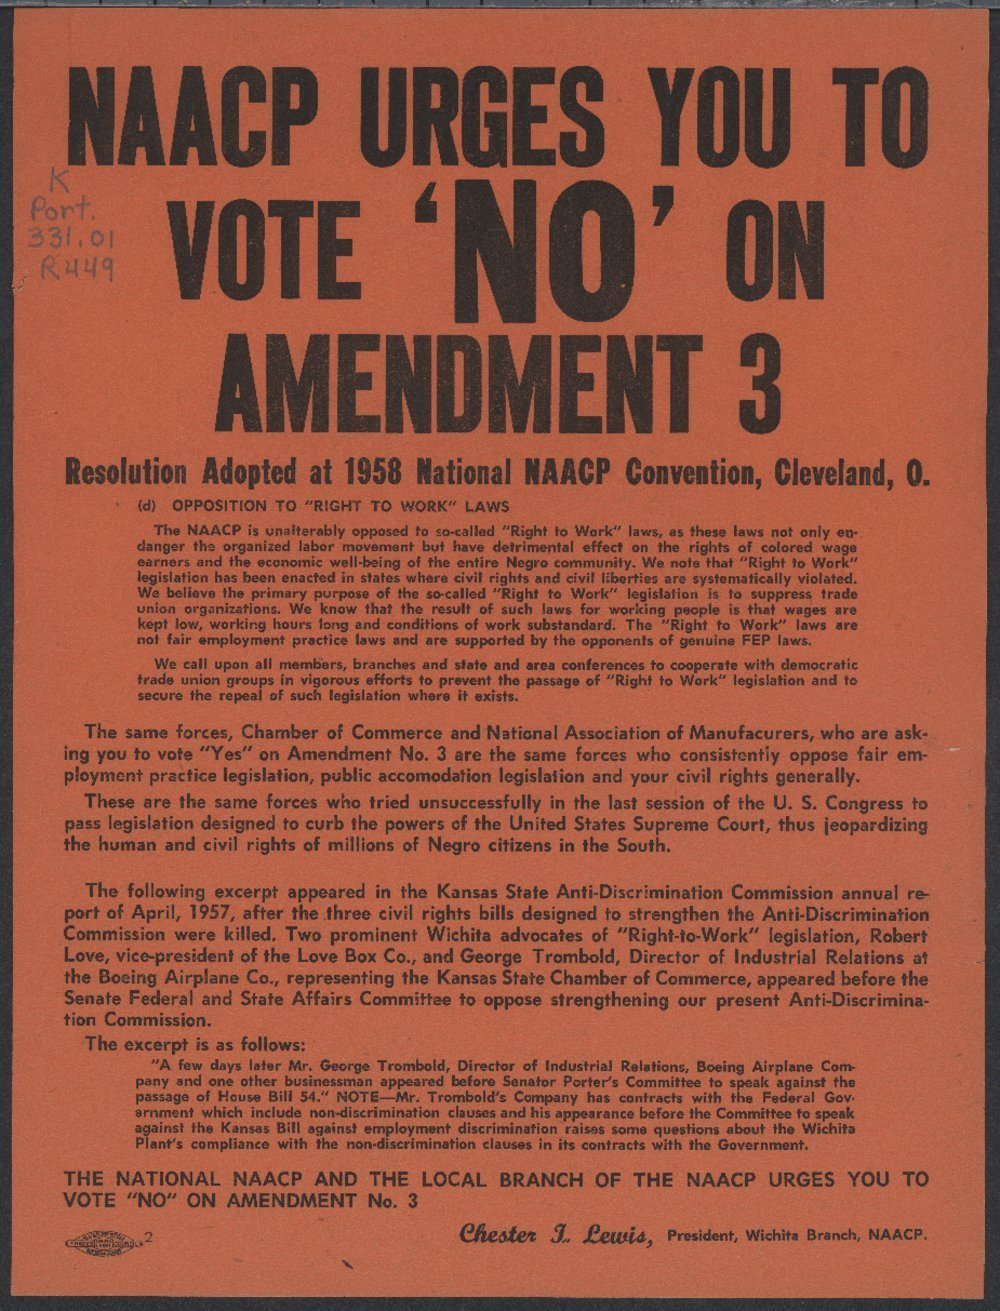 National Association for the Advancement of Colored People (NAACP) urges you to vote no on amendment three